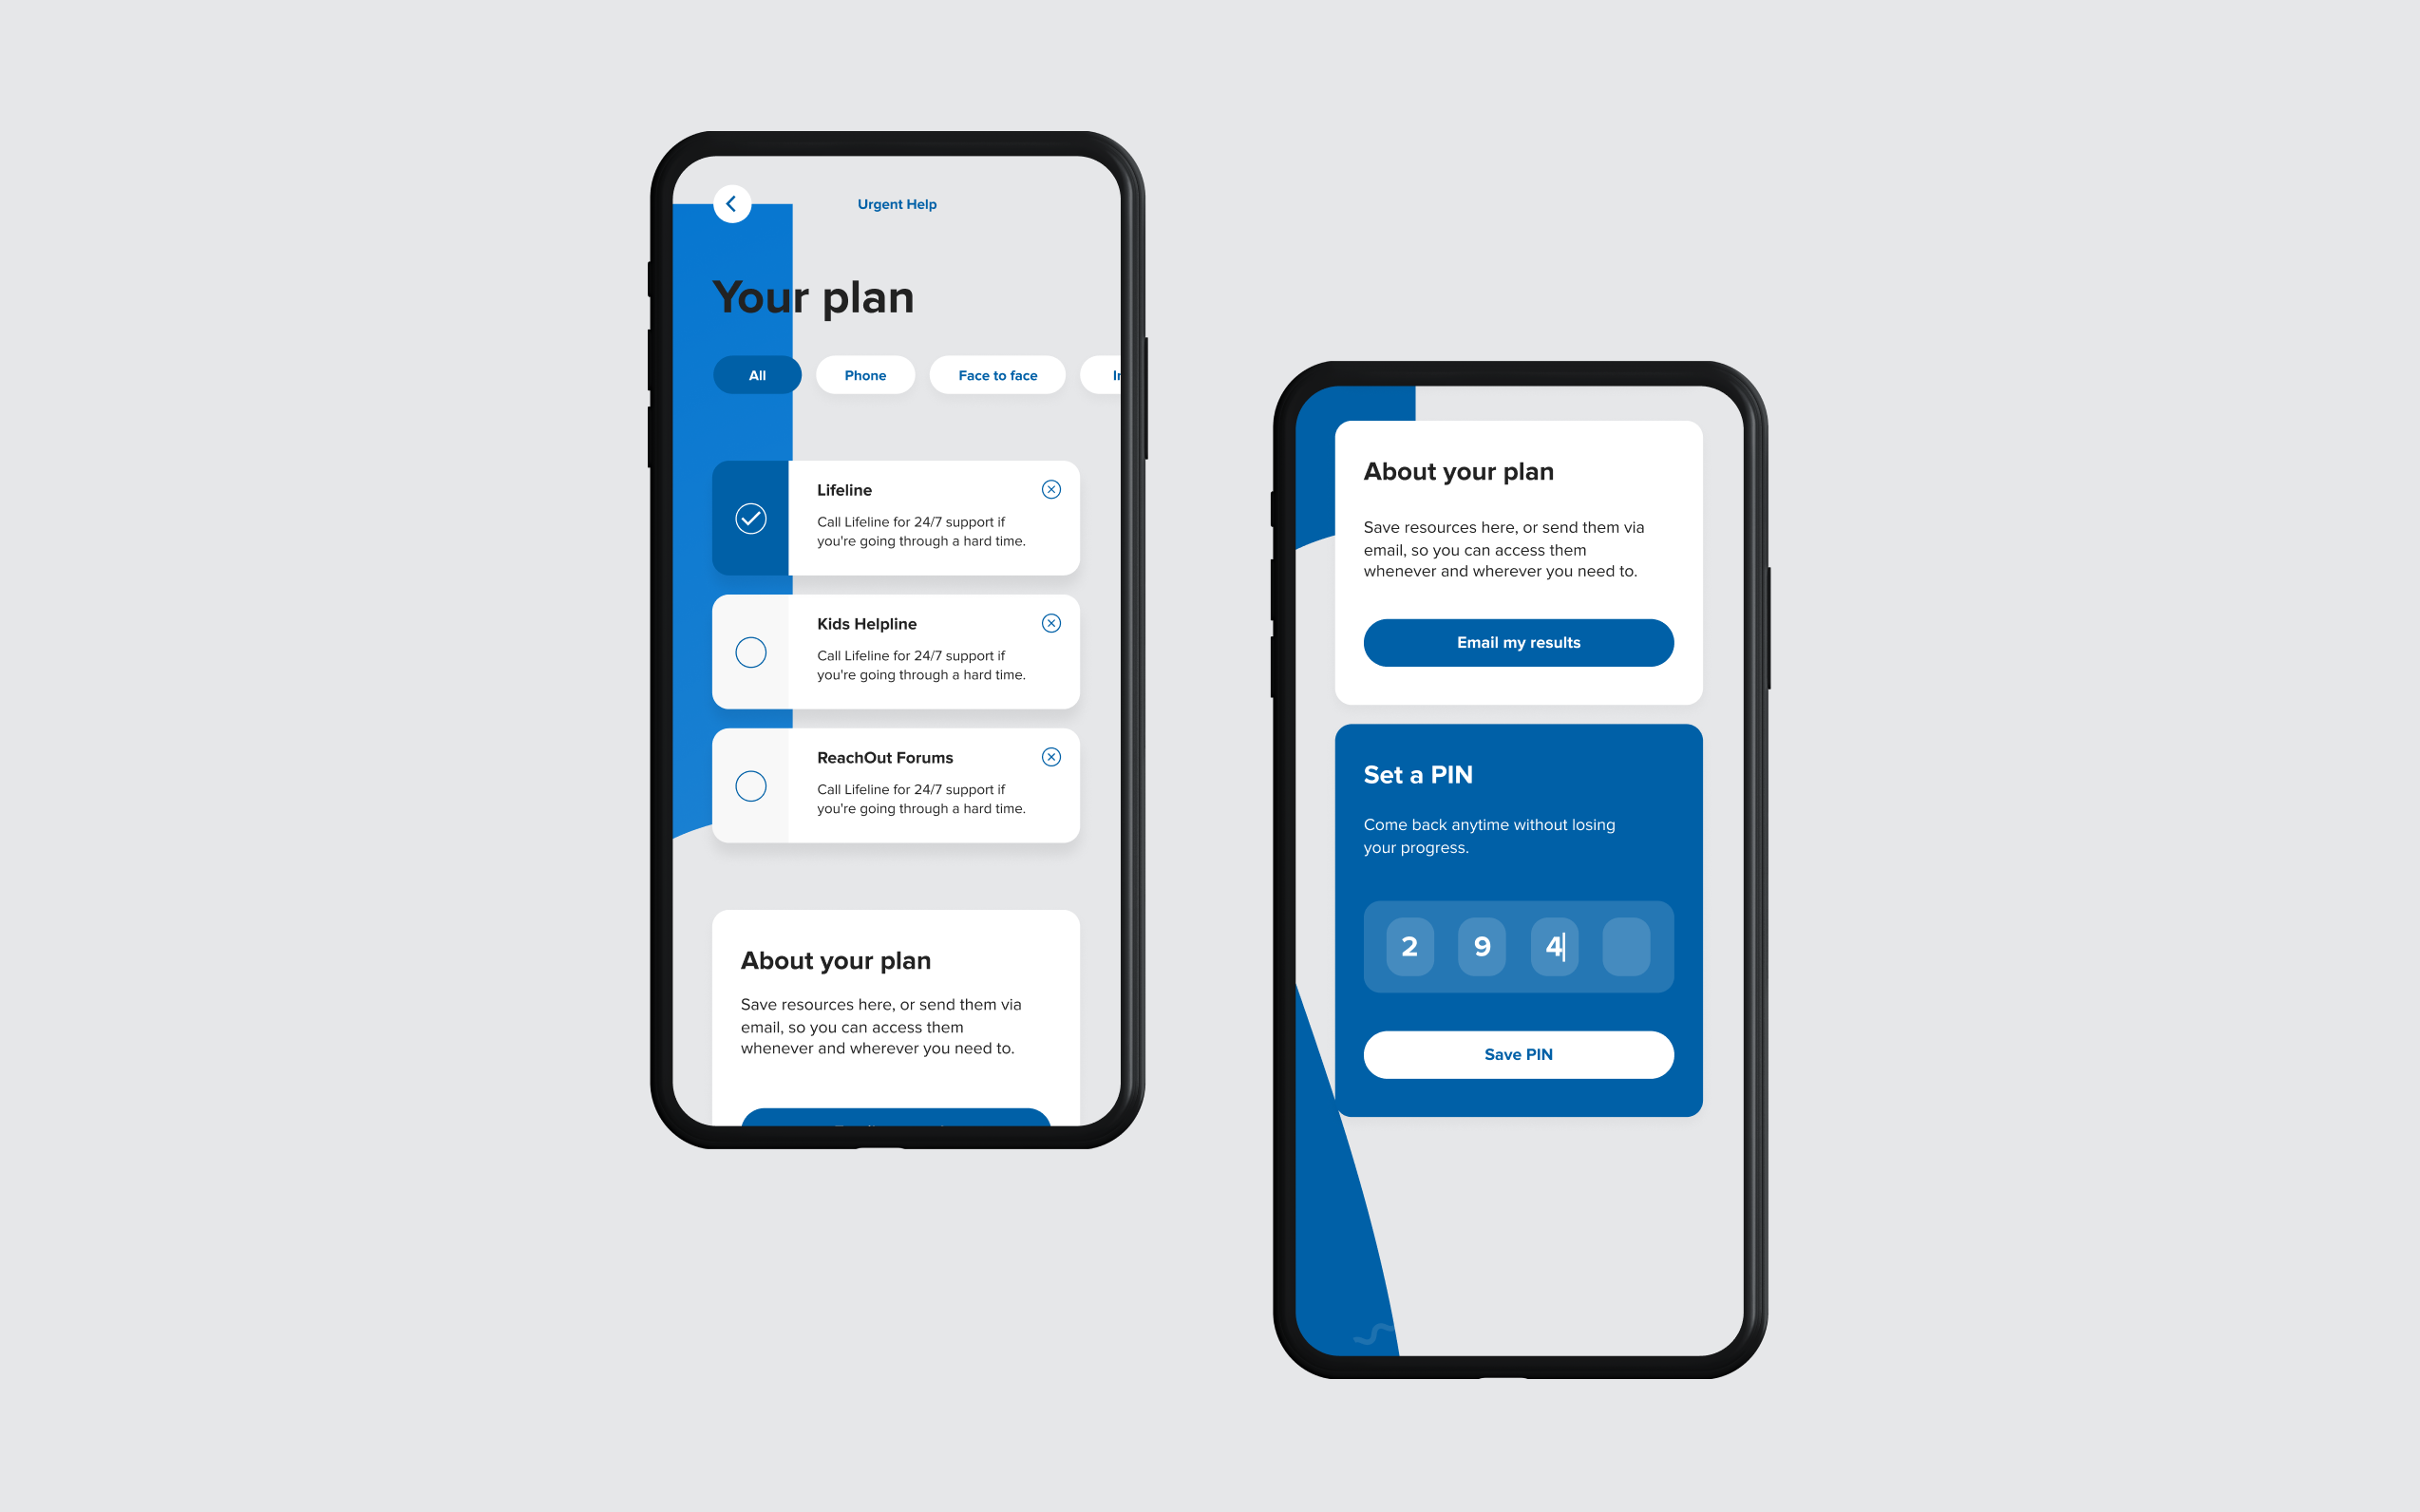 Mobile Next Step Your Plan and Set a PIN screen